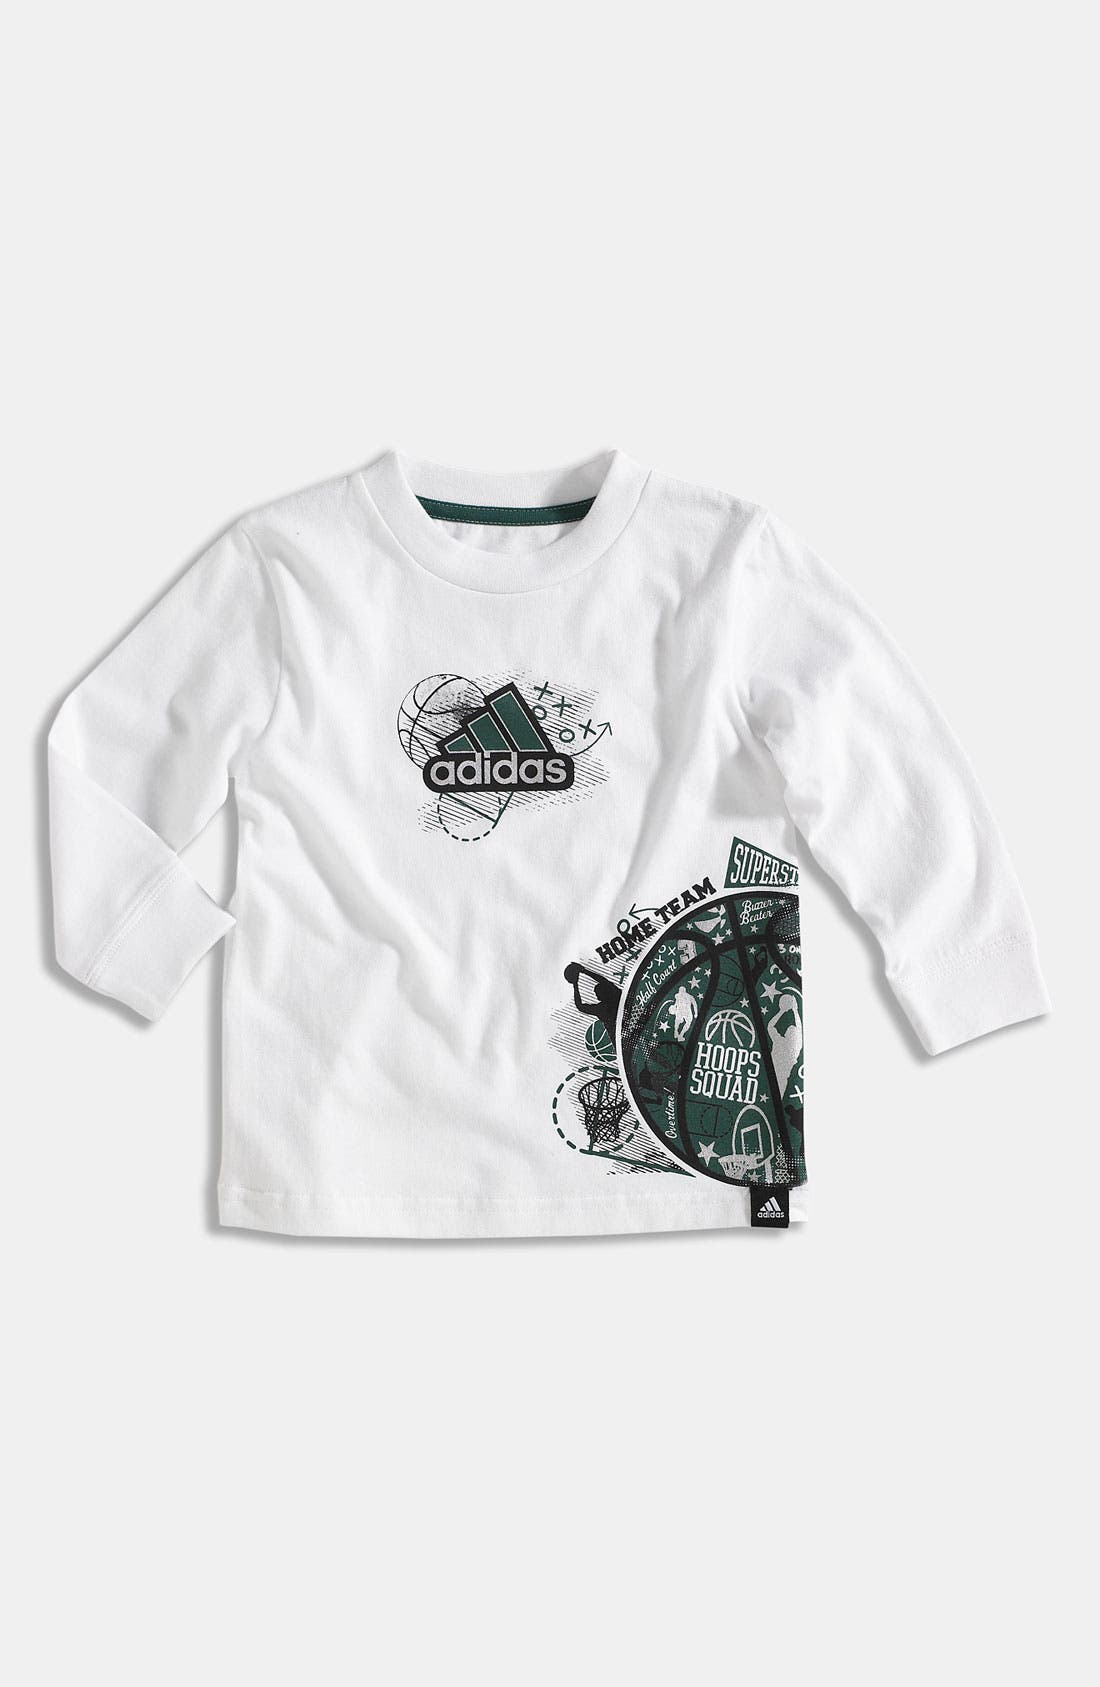 Main Image - adidas 'Playbook' T-Shirt (Toddler)